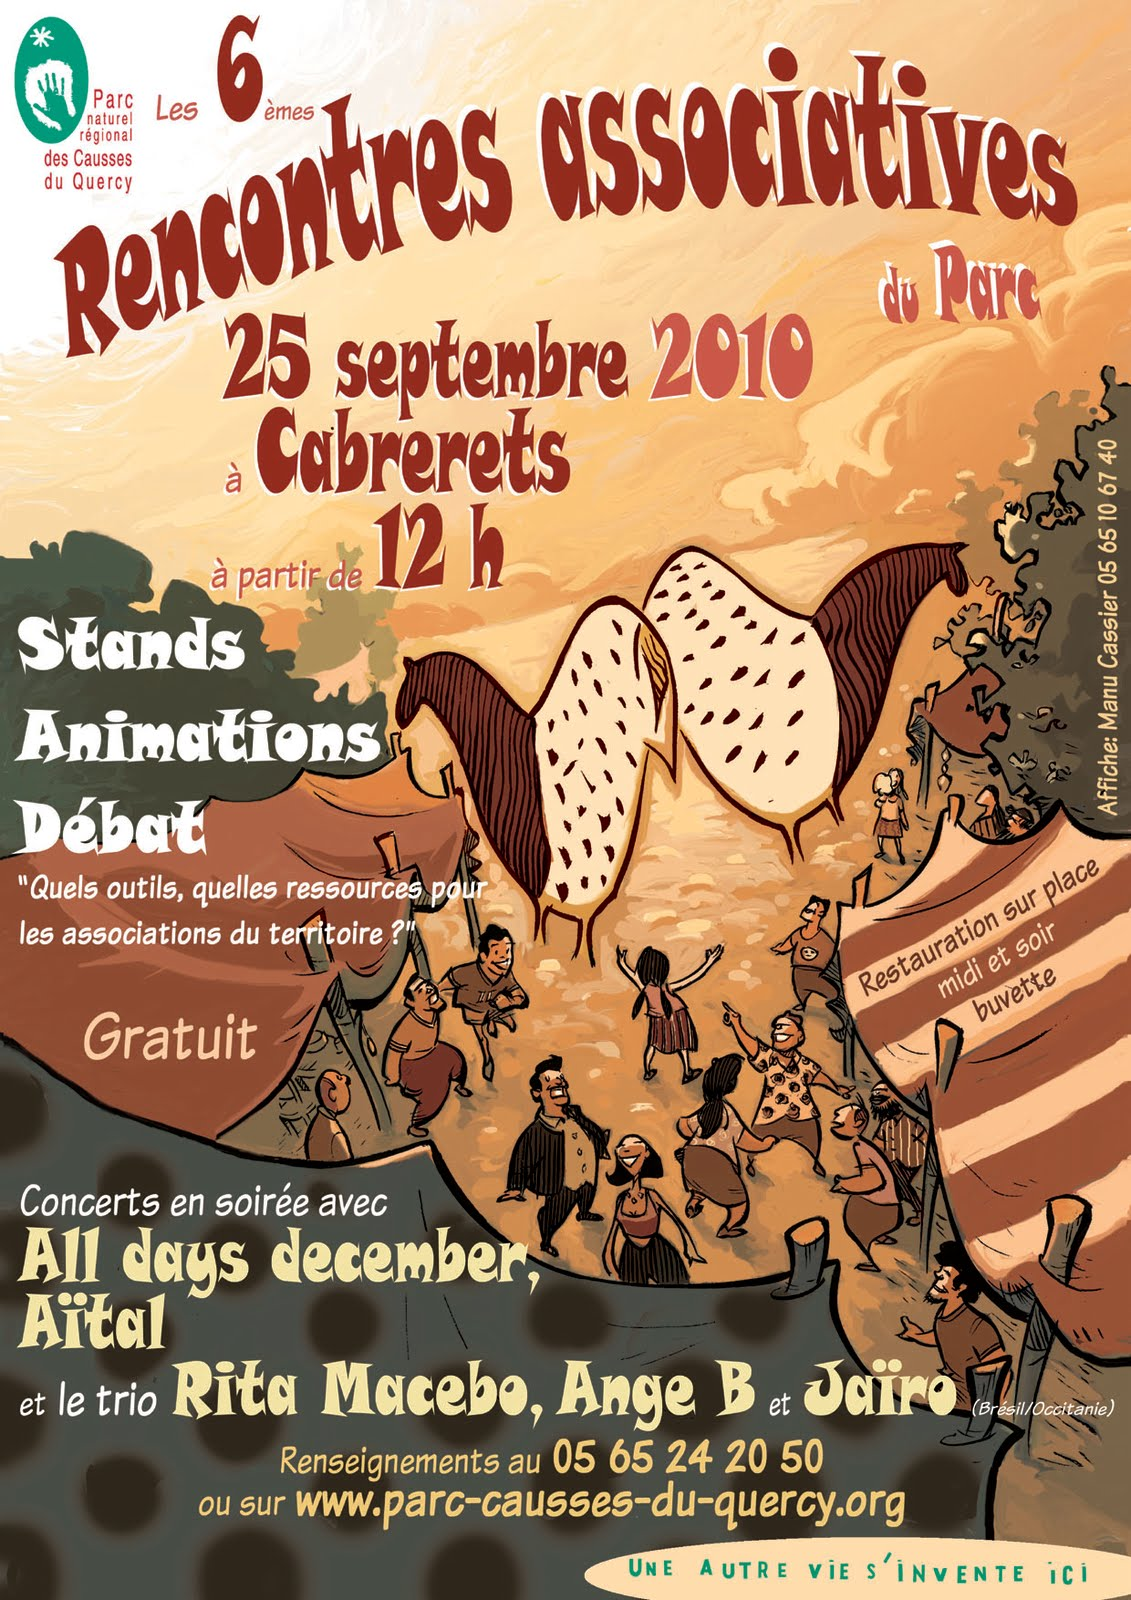 Rencontres associatives